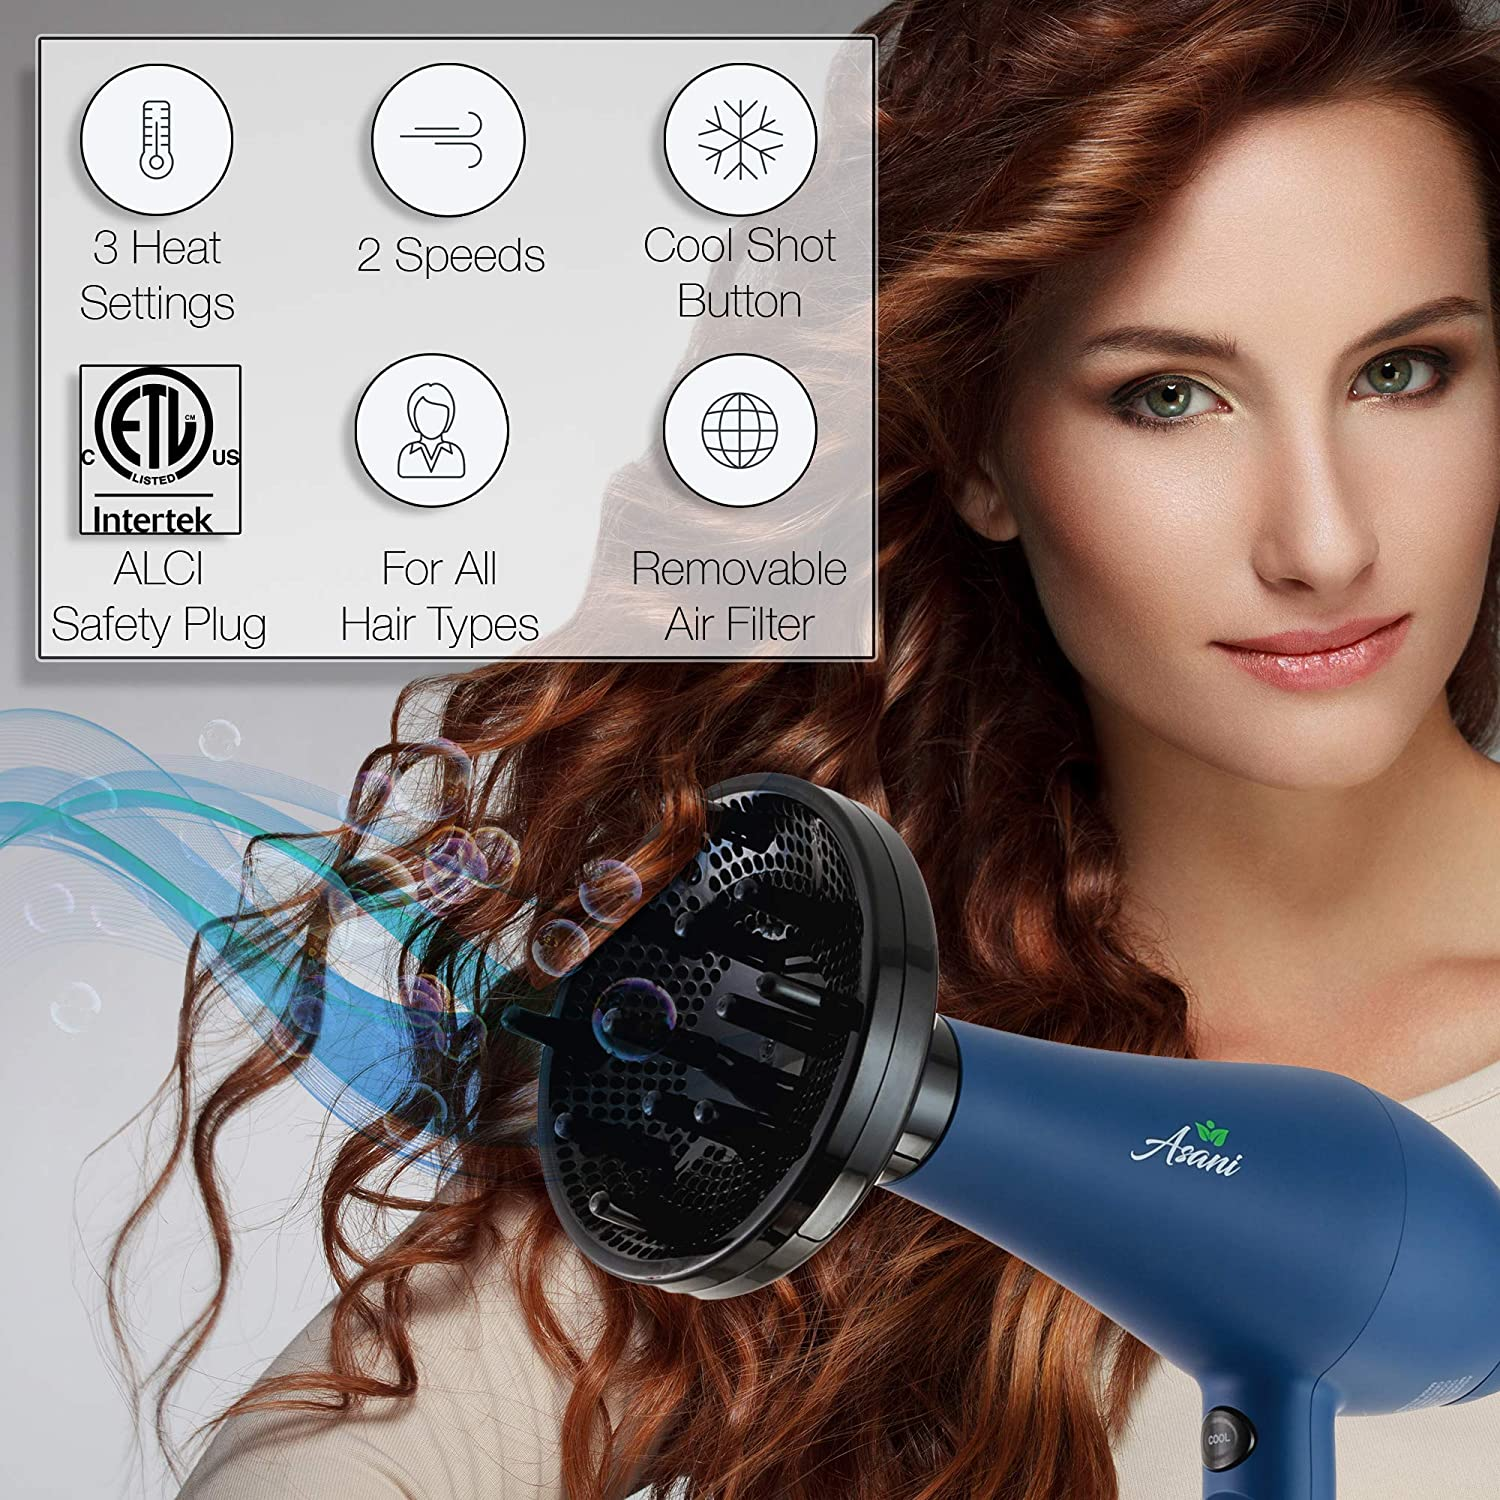 Negative Ion Hair Blow Dryer with Diffuser Professional Anti-frizz 1875W Extra-Fast Infrared Blow dryer Straightener with Quiet Salon-Grade Motor 3 Attachments, 3 Heat Settings and 2 Speeds